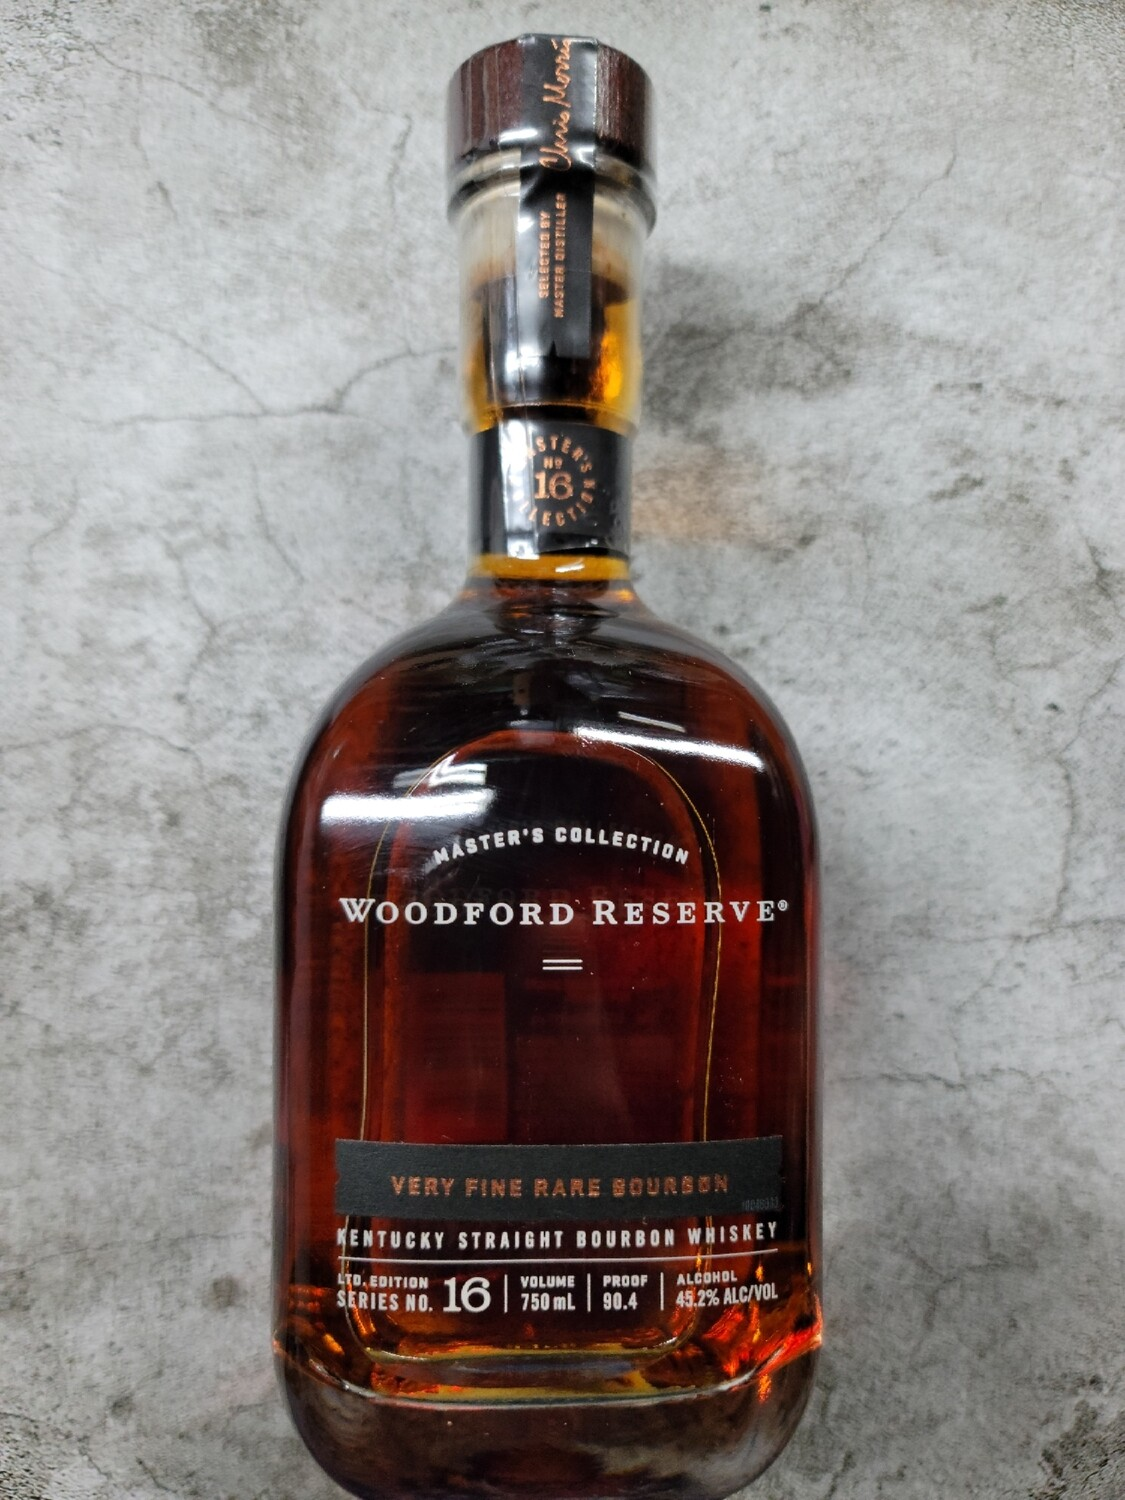 Woodford Reserve Master's Collection Very Fine Rare Bourbon series no.16 750ml